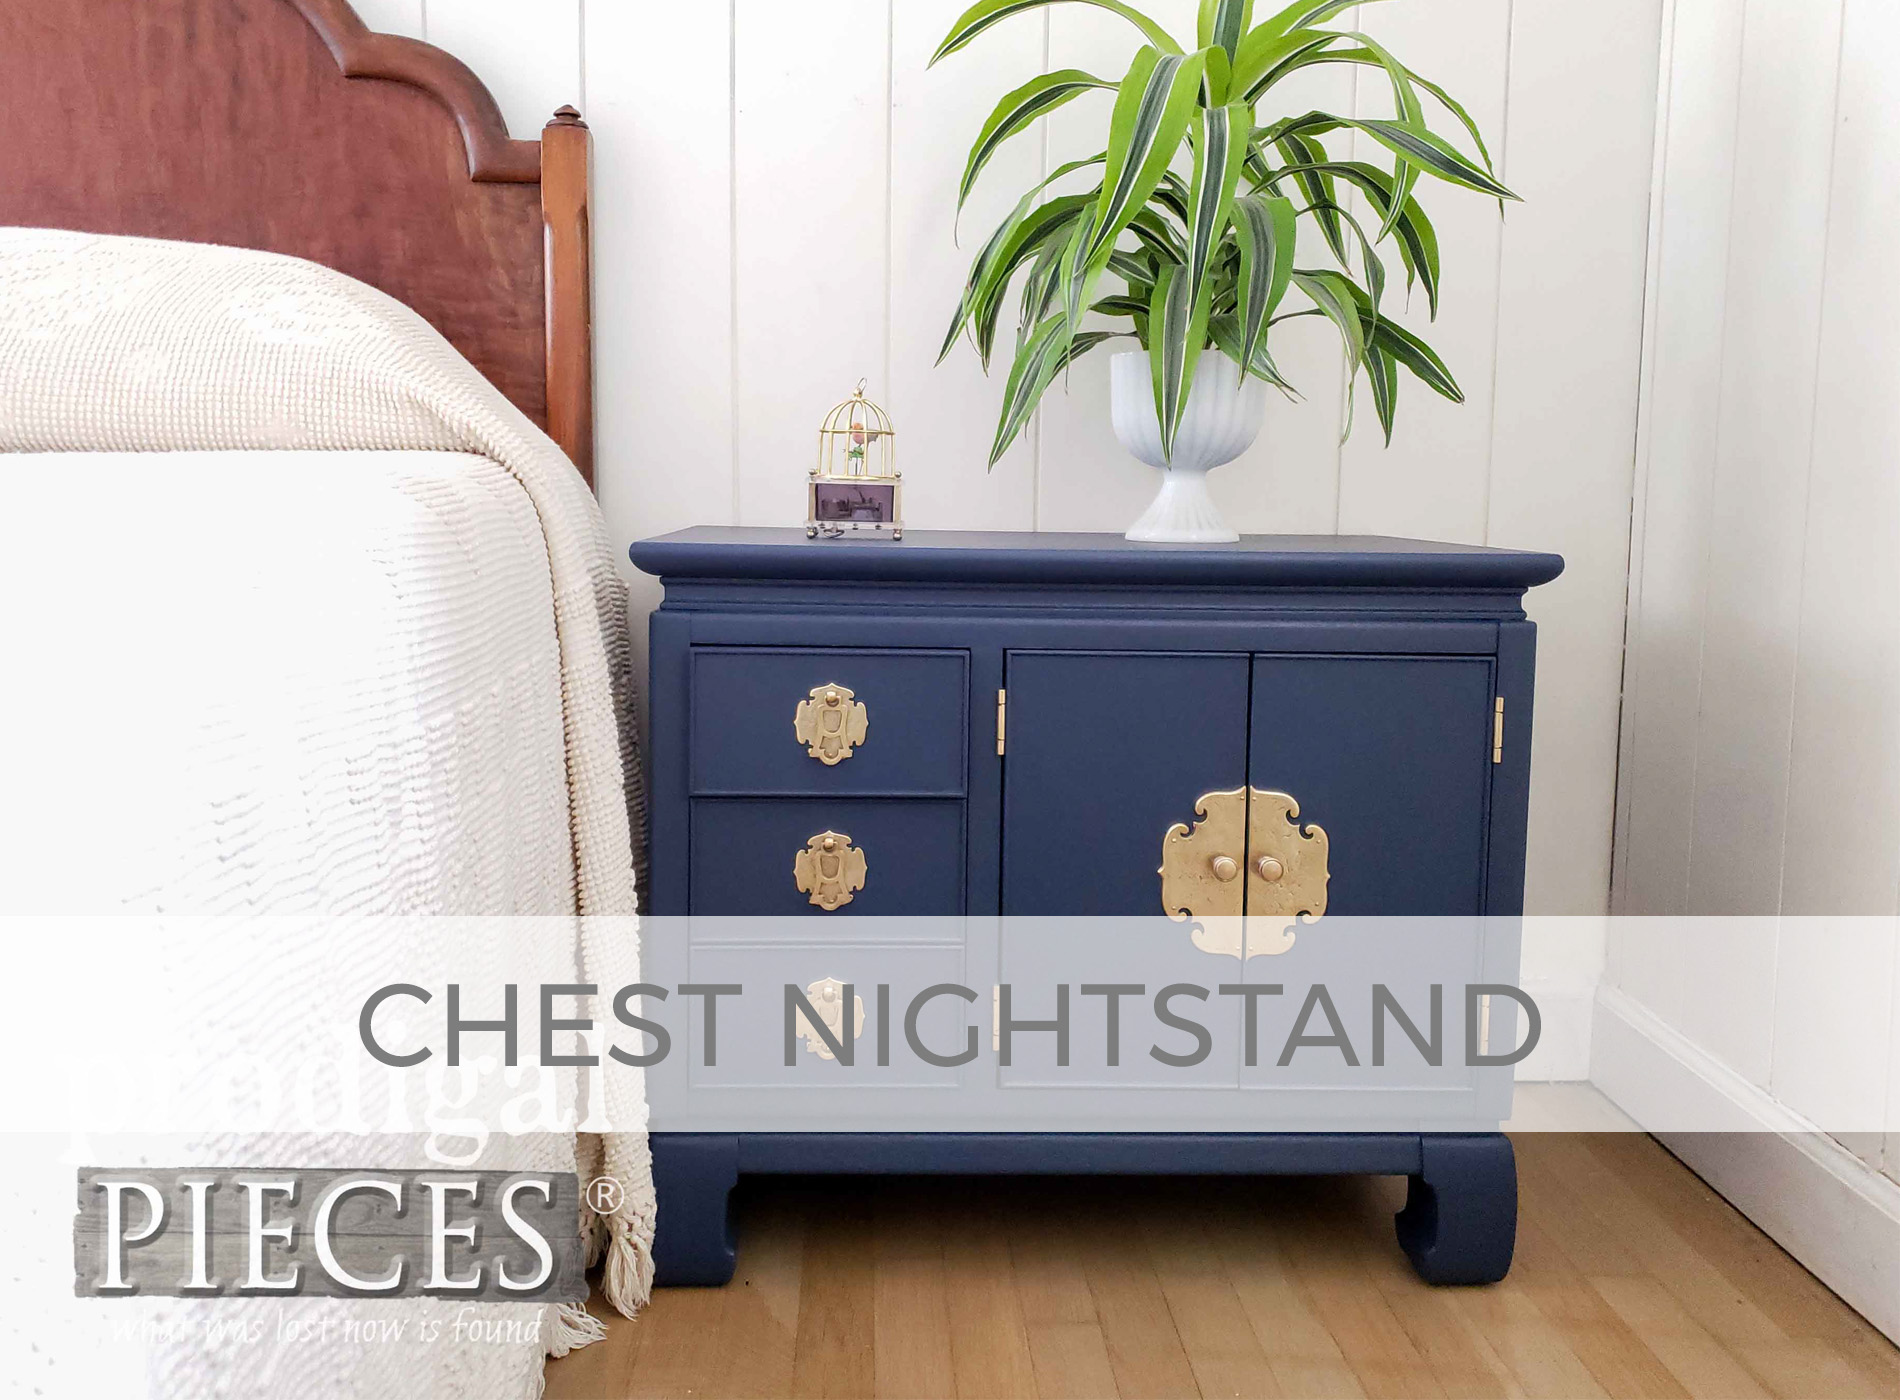 Vintage Chest Nightstand with Boho Style by Larissa of Prodigal Pieces | prodigalpieces.com #prodigalpieces